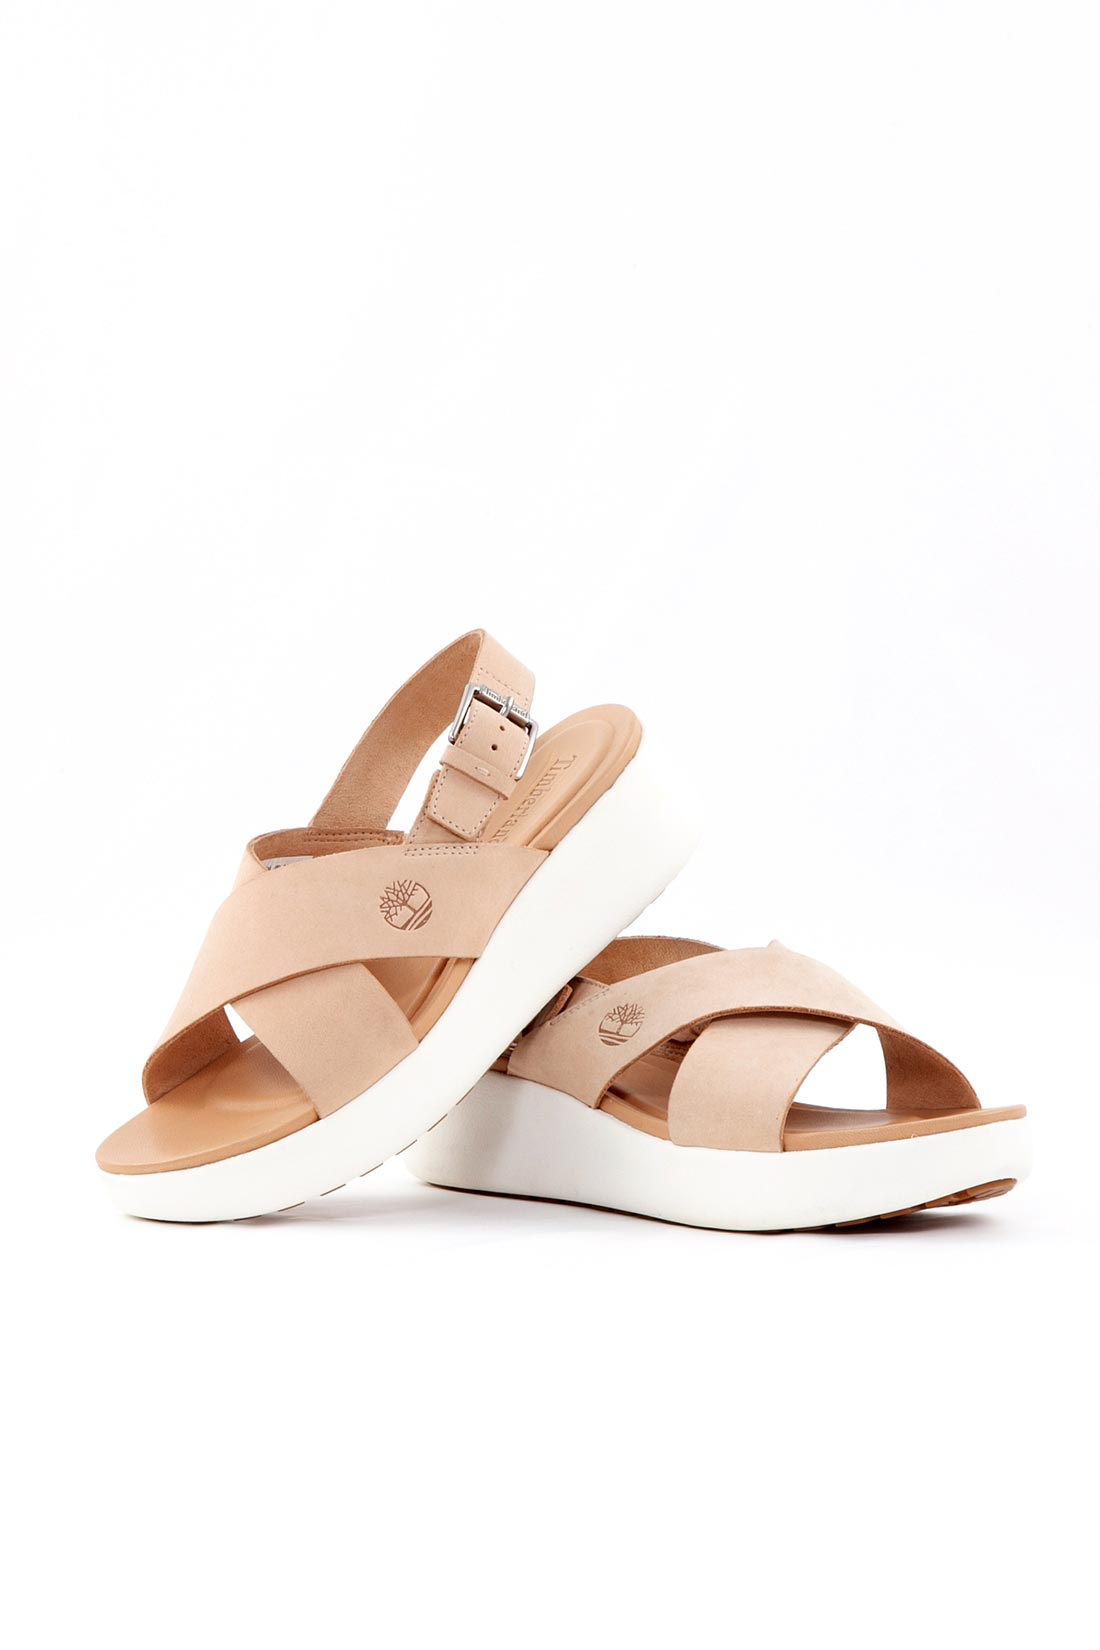 TIMBERLAND Sandalo donna Los Angeles Wind slingback in nubuck beige